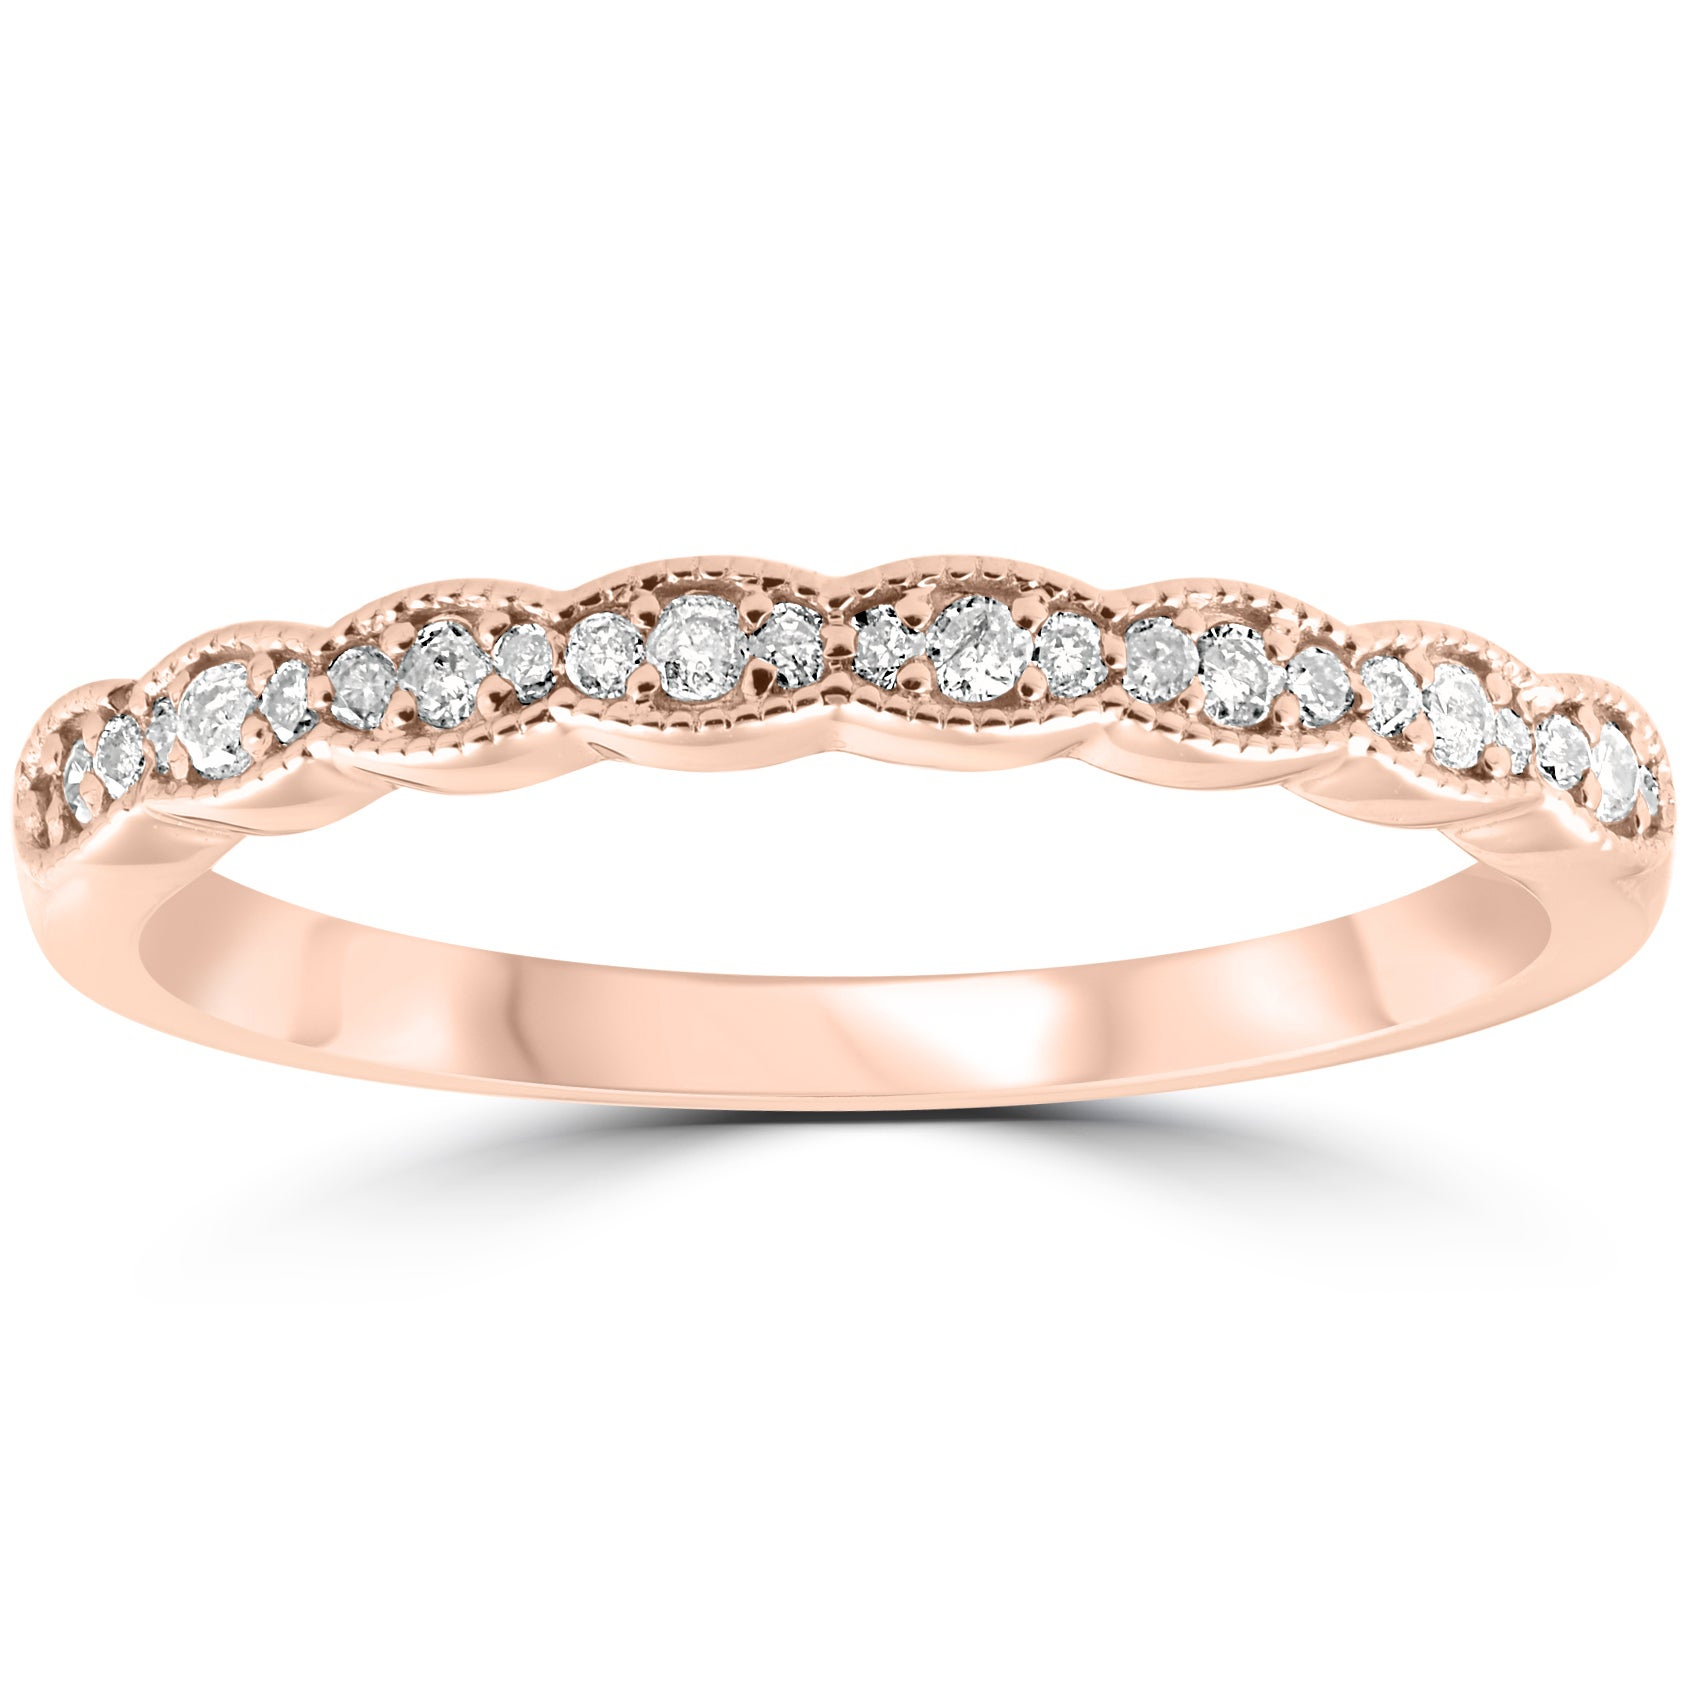 "Pompeii3 14k Rose Gold 1/5ct Tdw Diamond Stackable Wedding Ring Regarding Most Up To Date Diamond Seven Stone ""x"" Anniversary Bands In Sterling Silver And Rose Gold (View 3 of 25)"